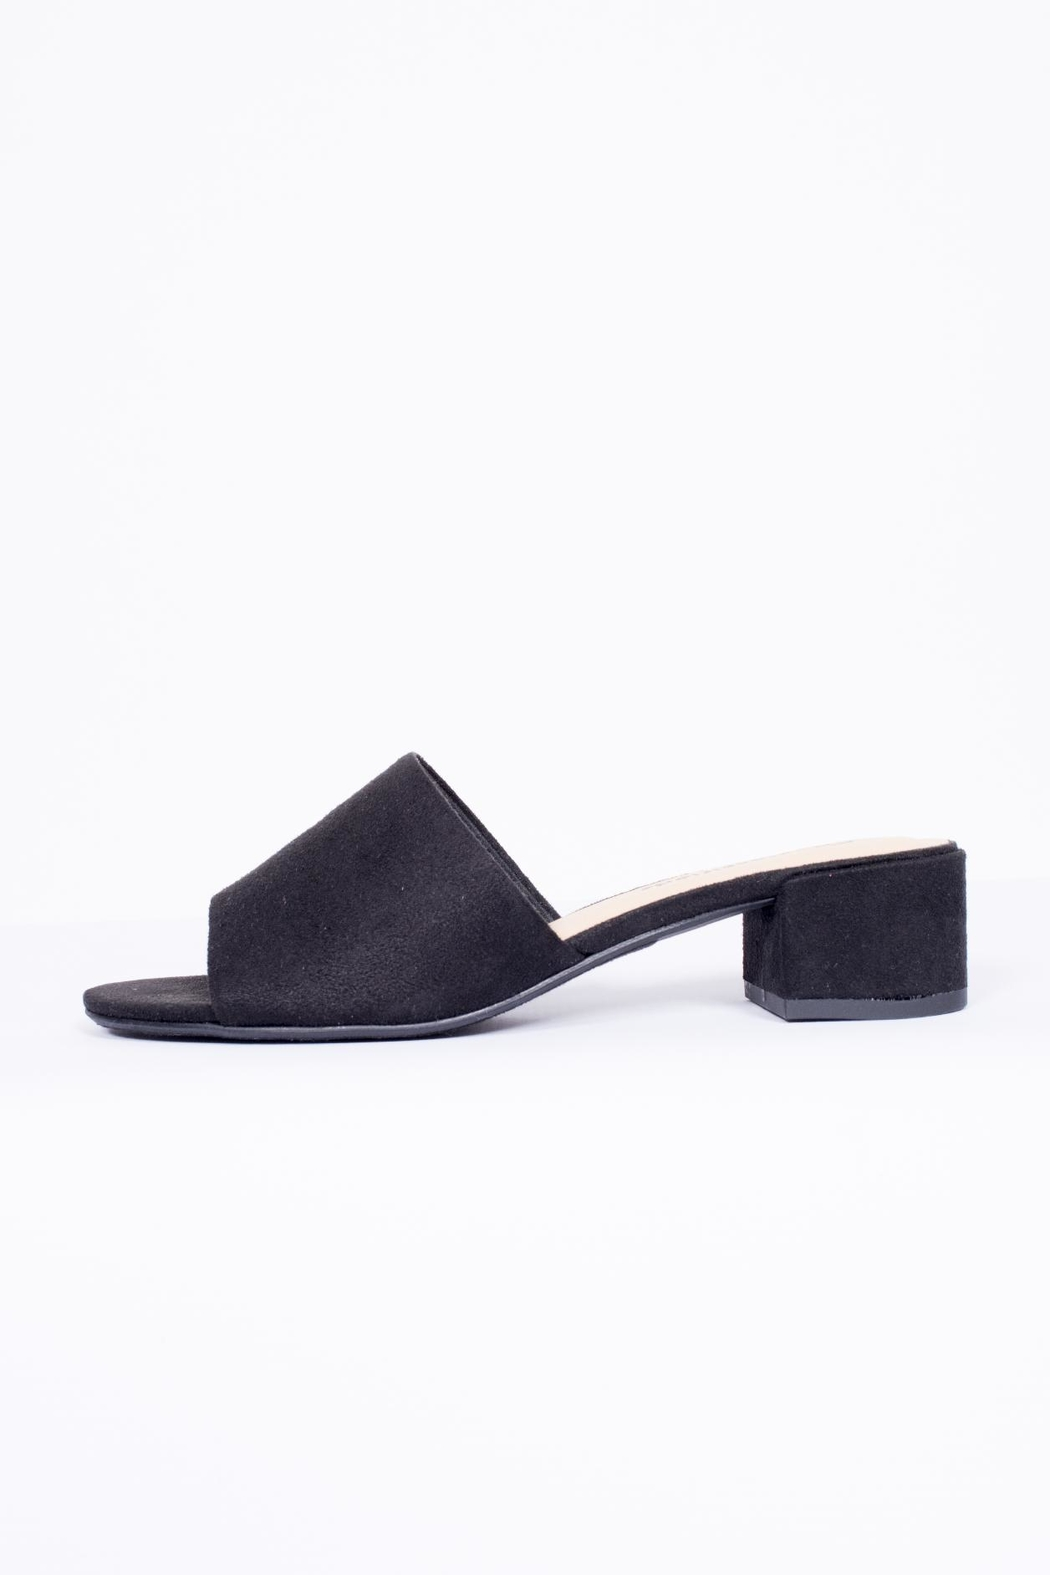 City Classified Black Suede Mule Shoes - Main Image